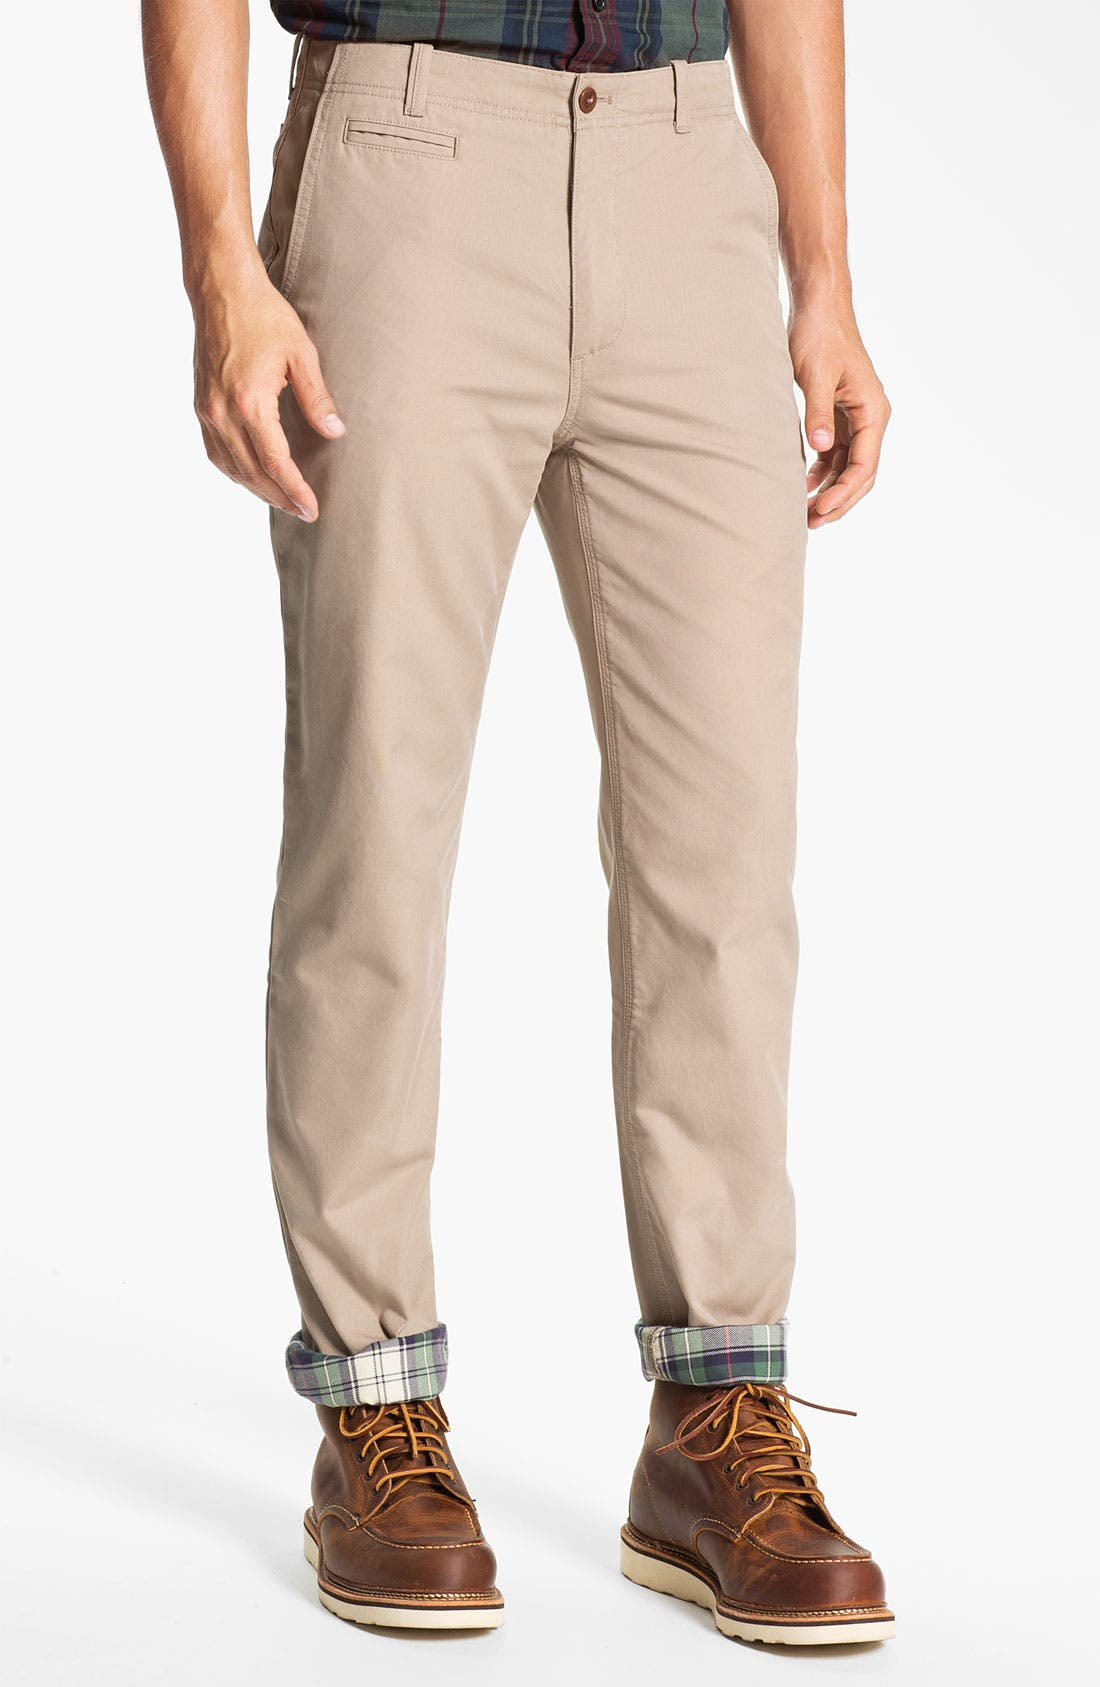 Alternate Image 1 Selected - Brooks Brothers Flannel Lined Flat Front Chinos